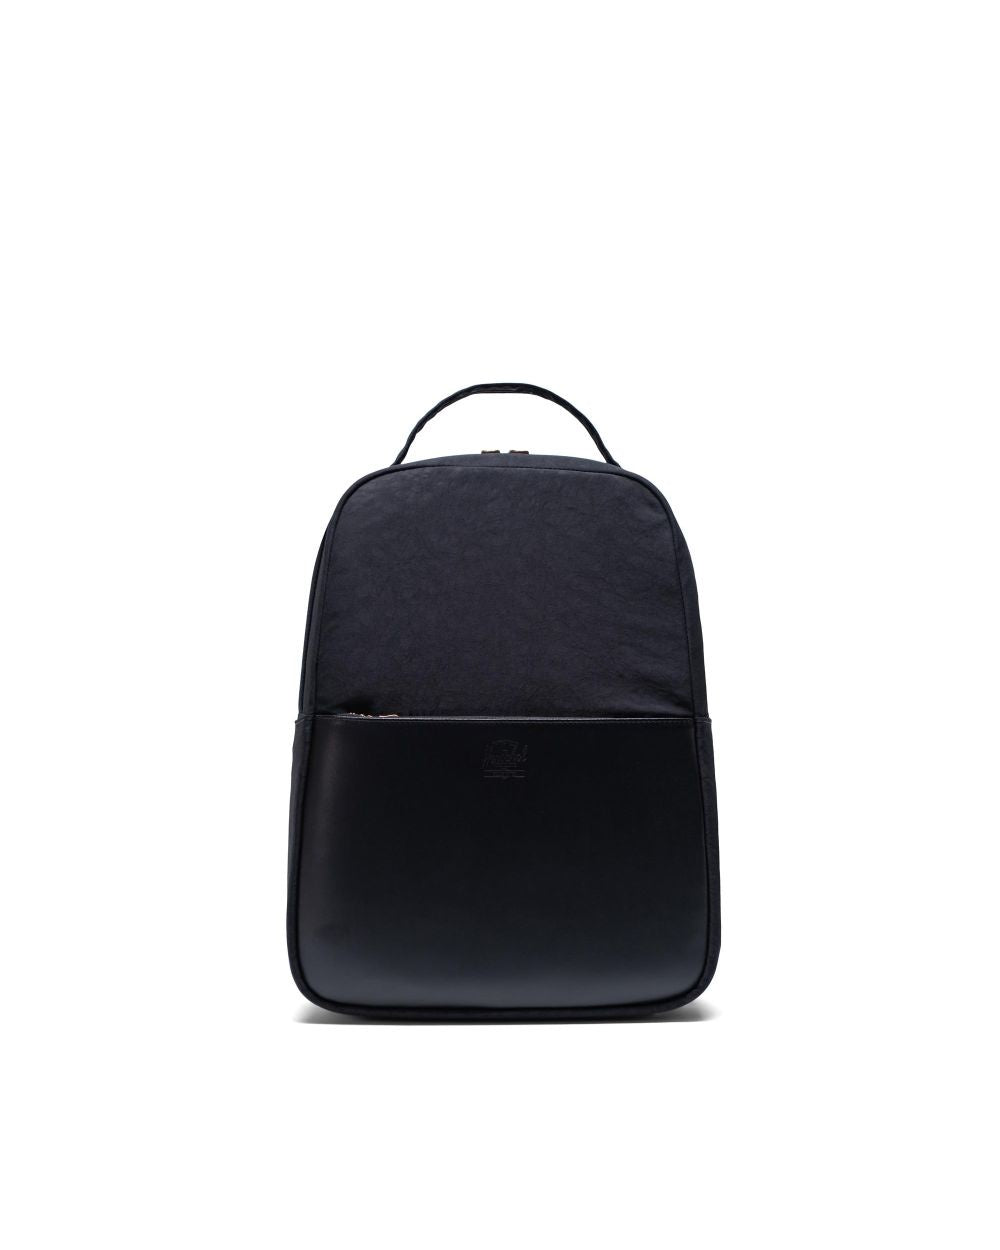 HERSCHEL - ORION BACKPACK MID-VOLUME IN BLACK